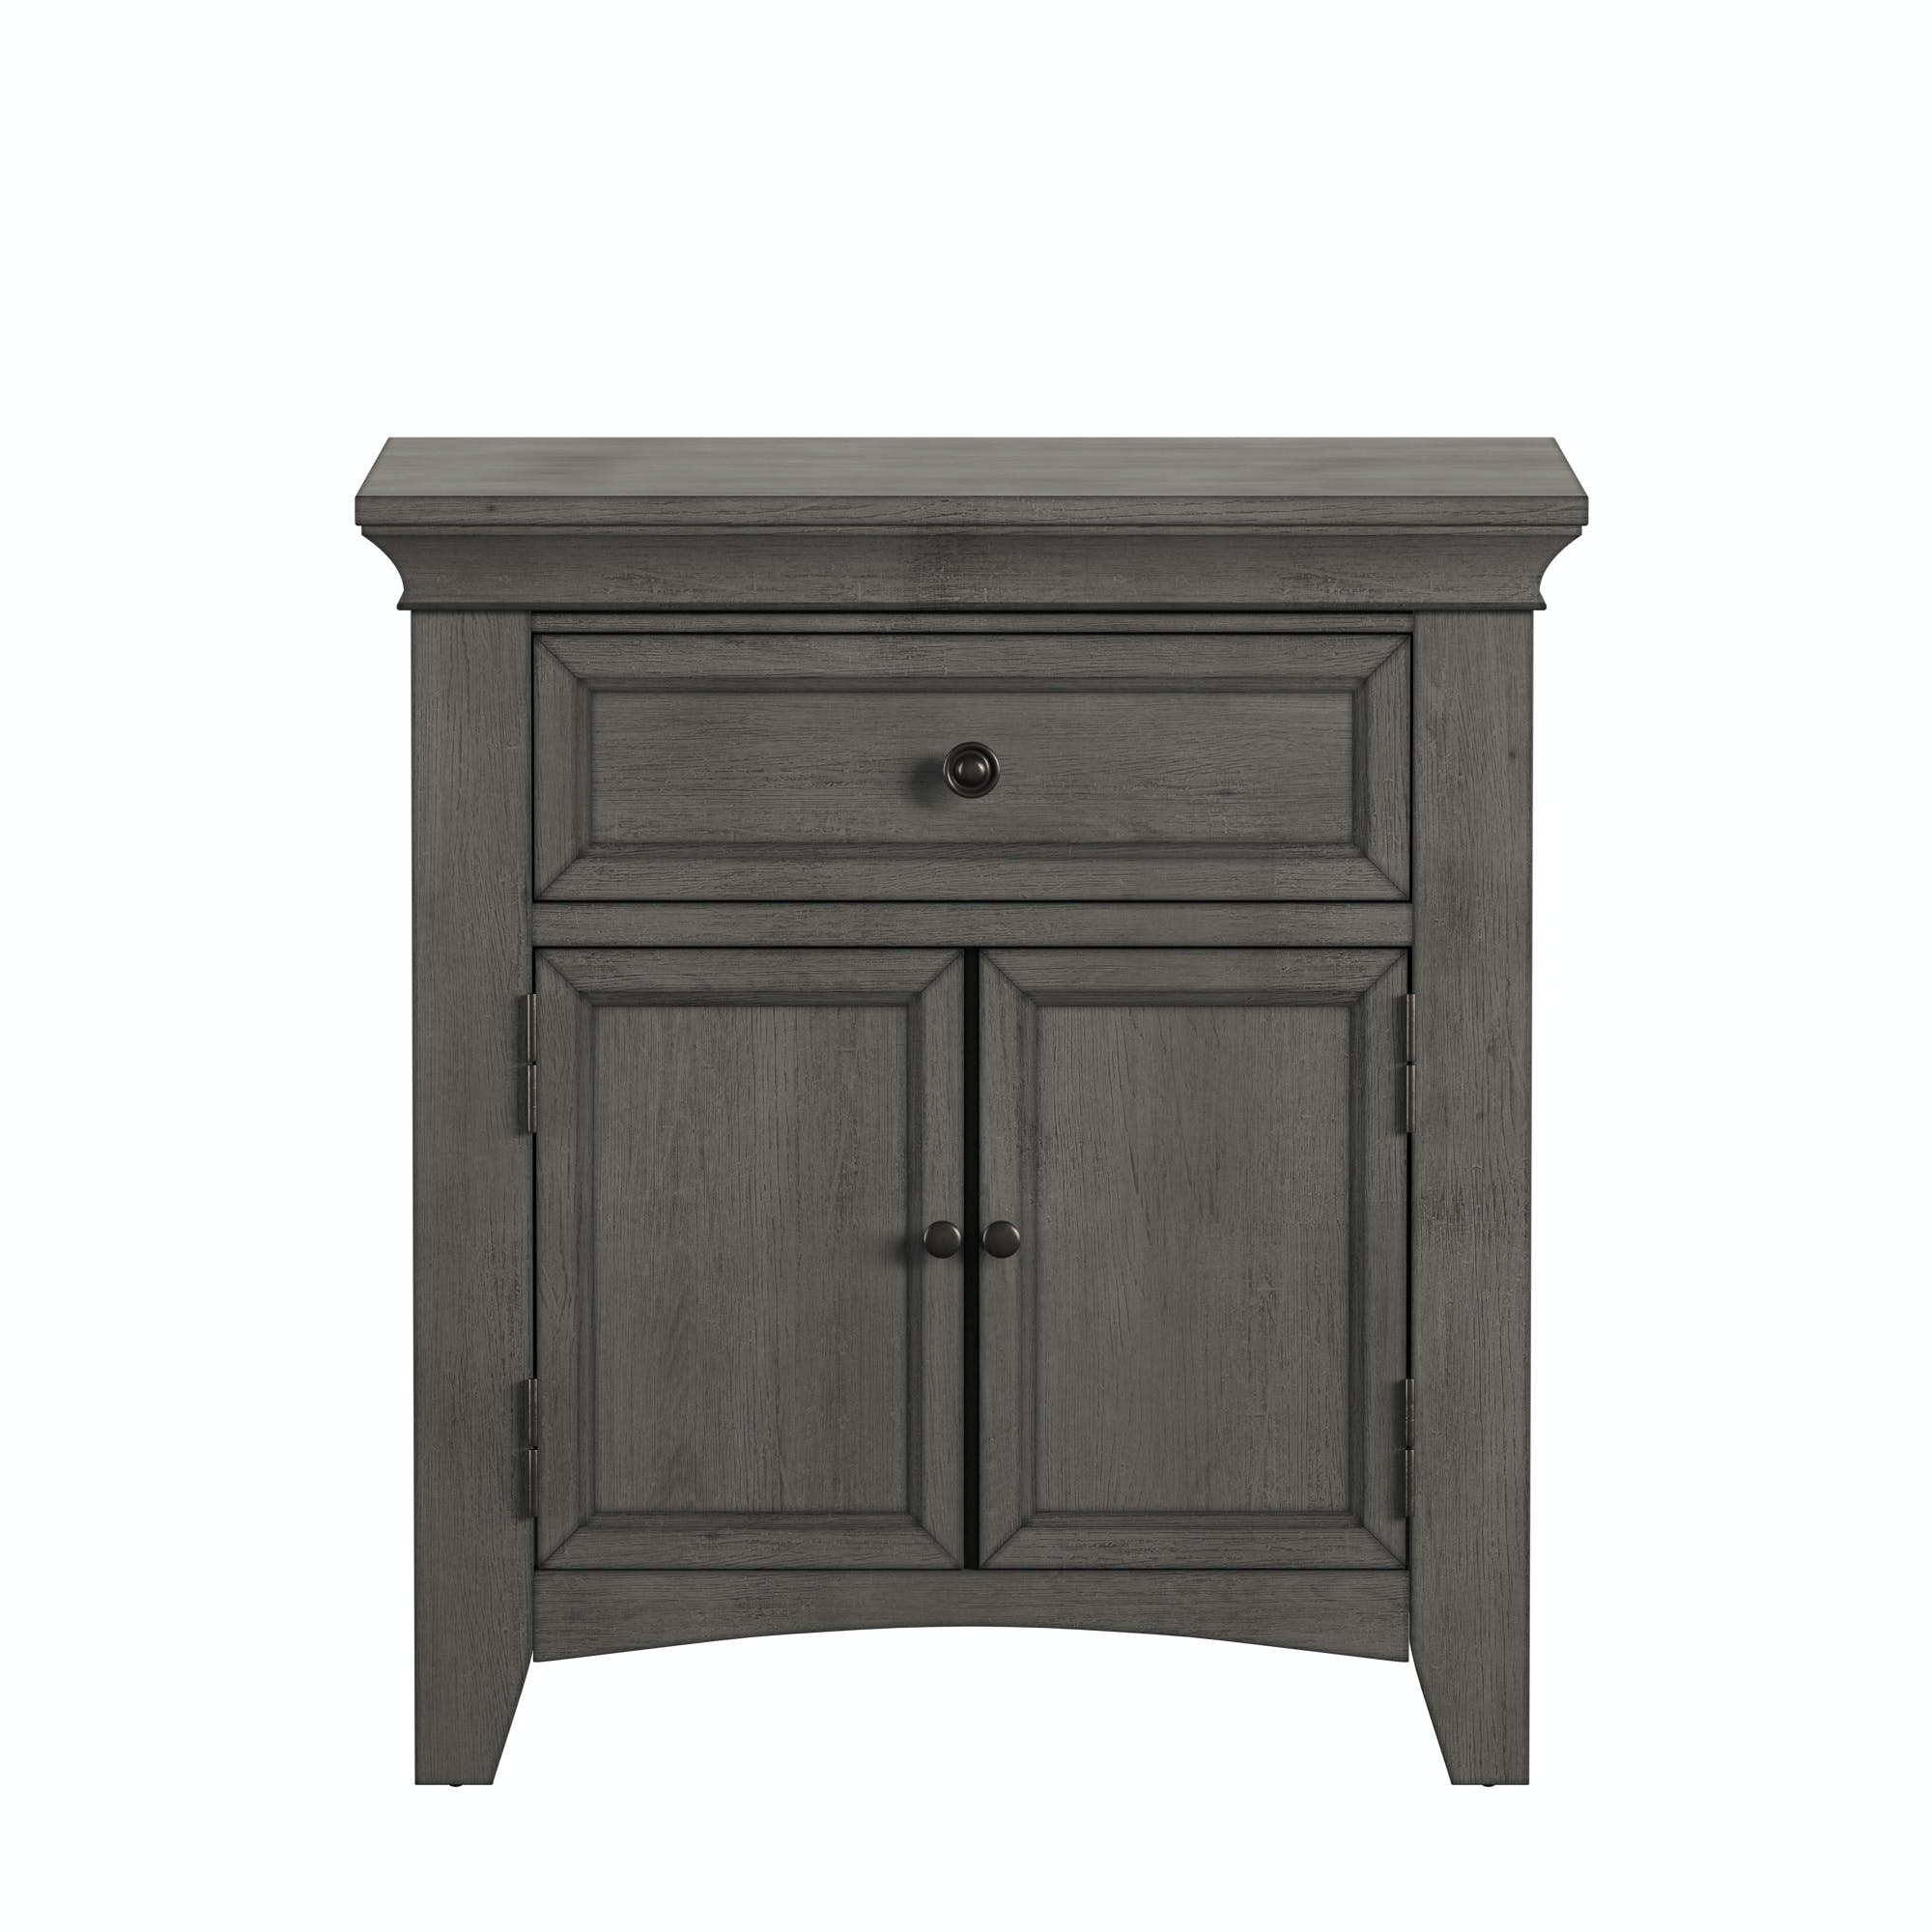 Dearborn Cupboard Nightstand Antique Grey Finish